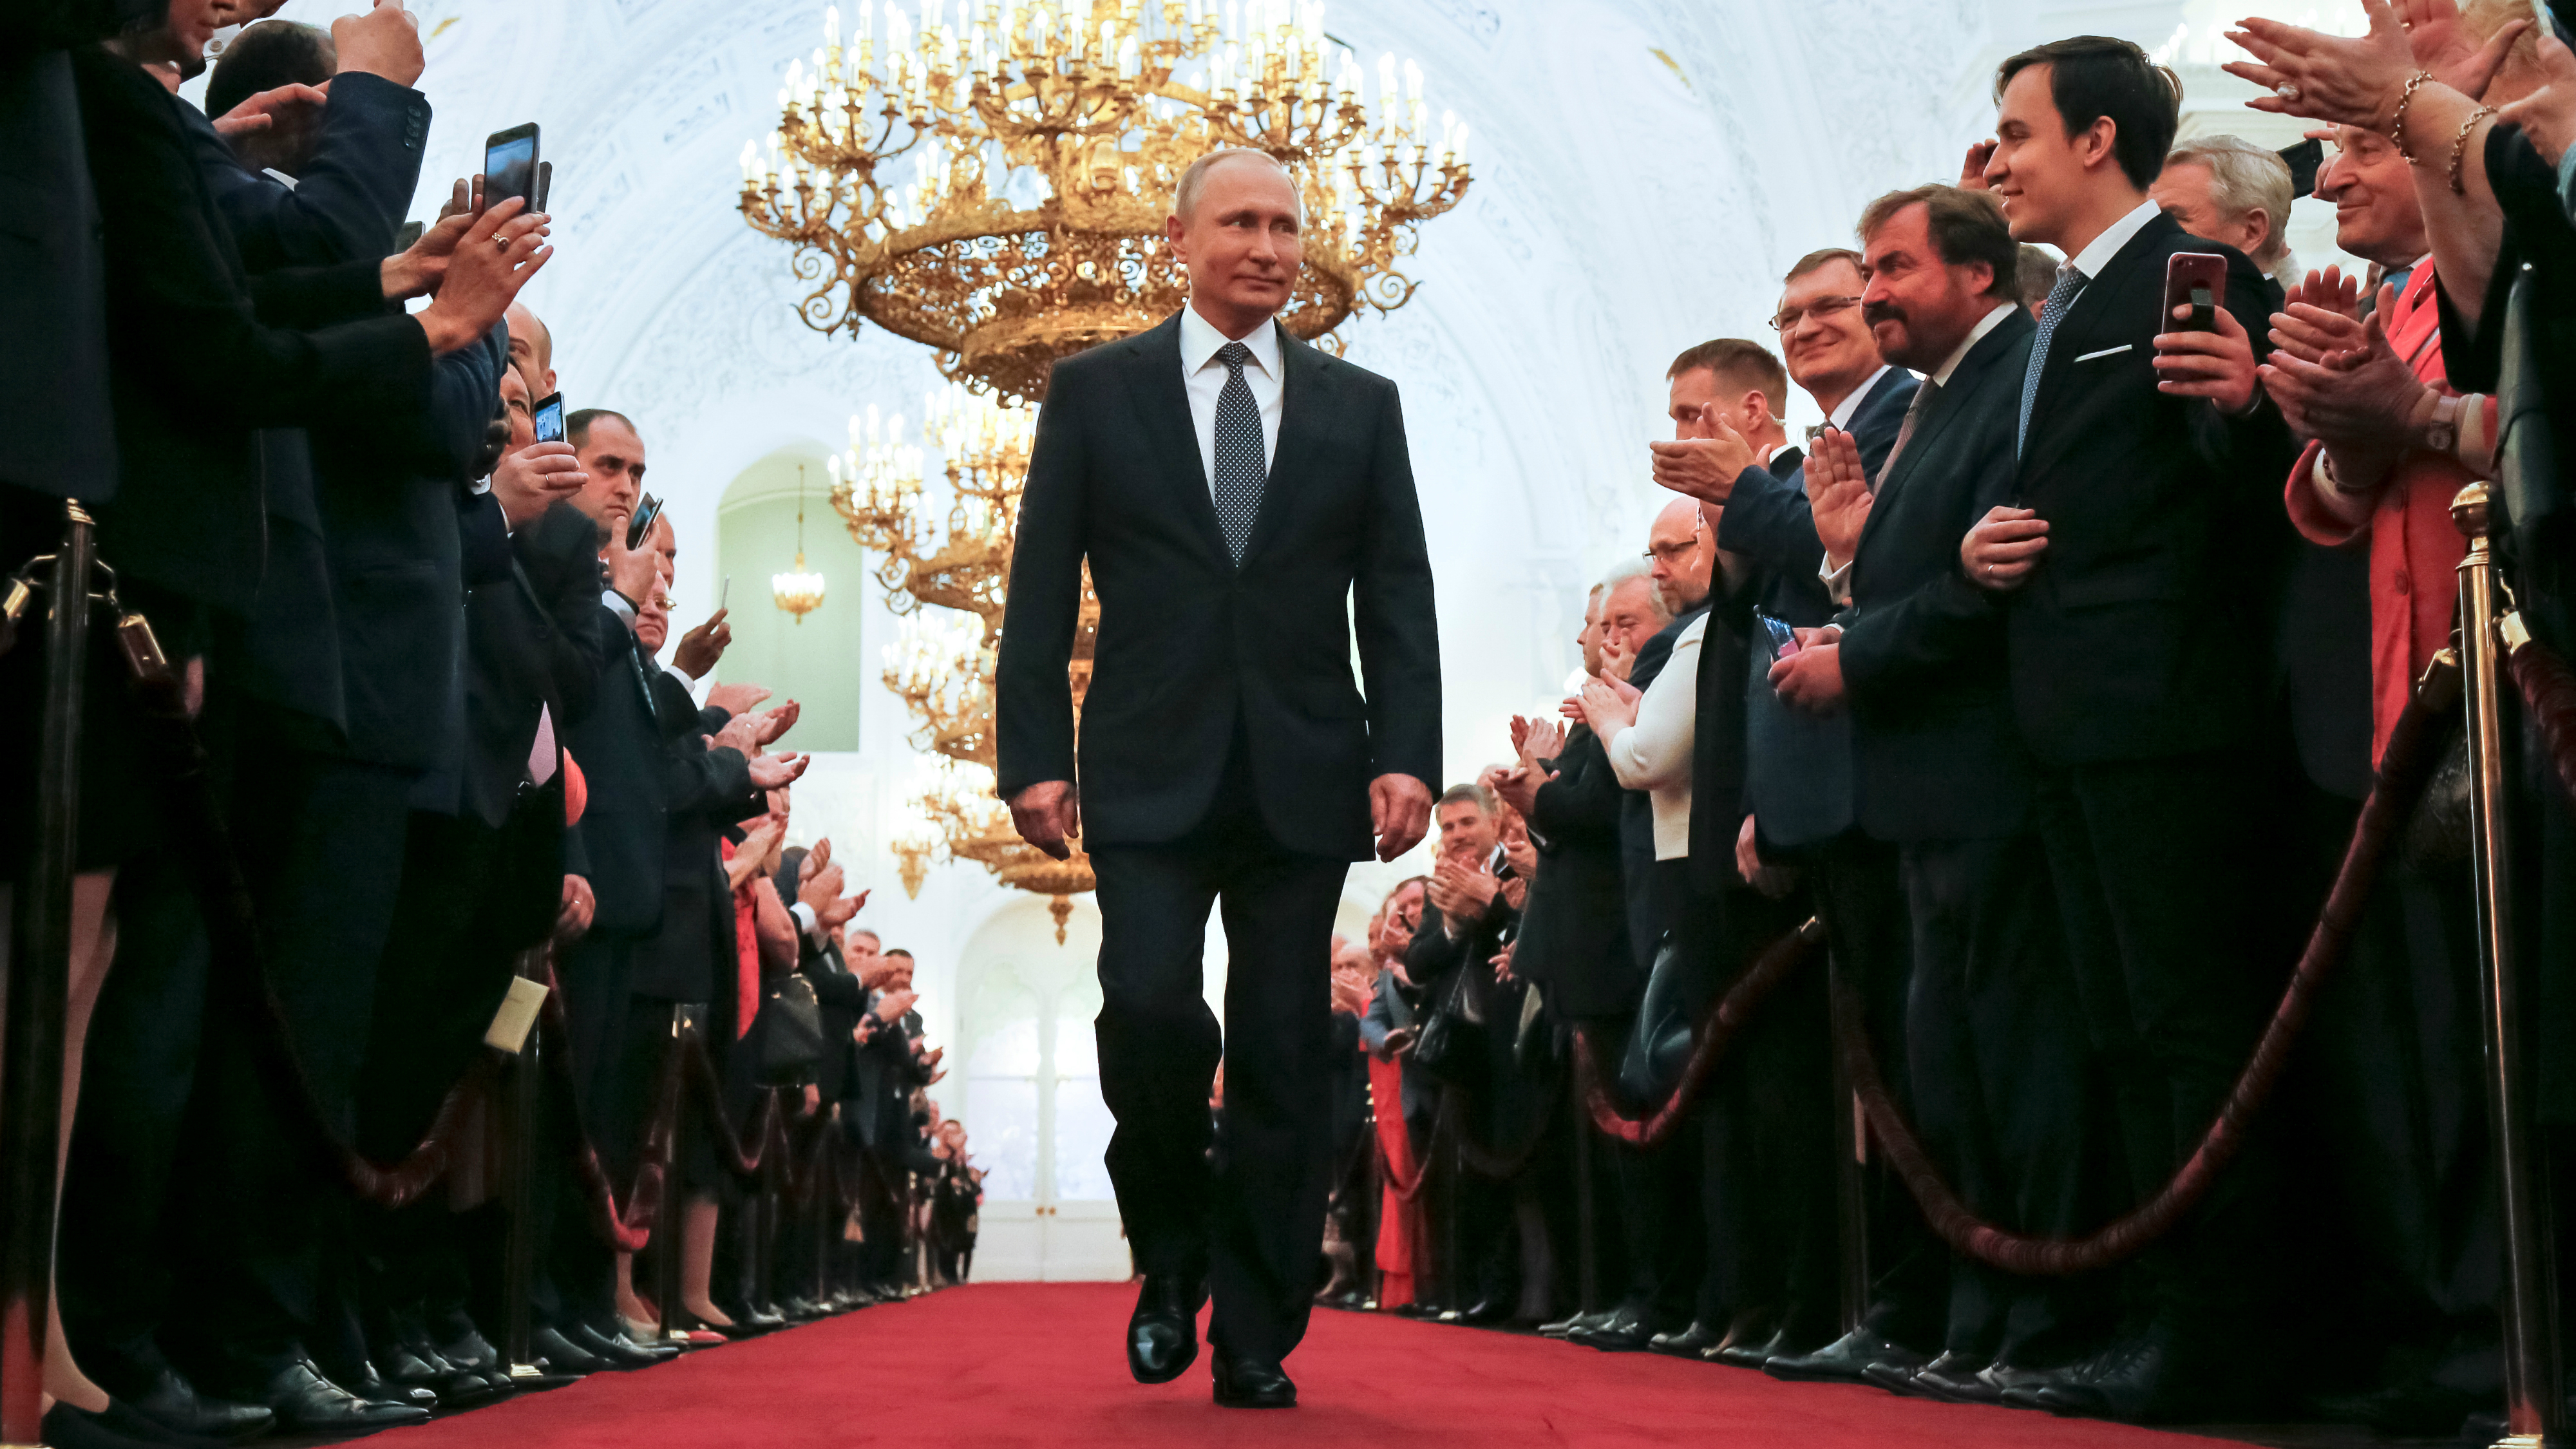 Russian President Vladimir Putin attends his fourth inauguration ceremony at the Kremlin in Moscow, Russia, May 7, 2018.